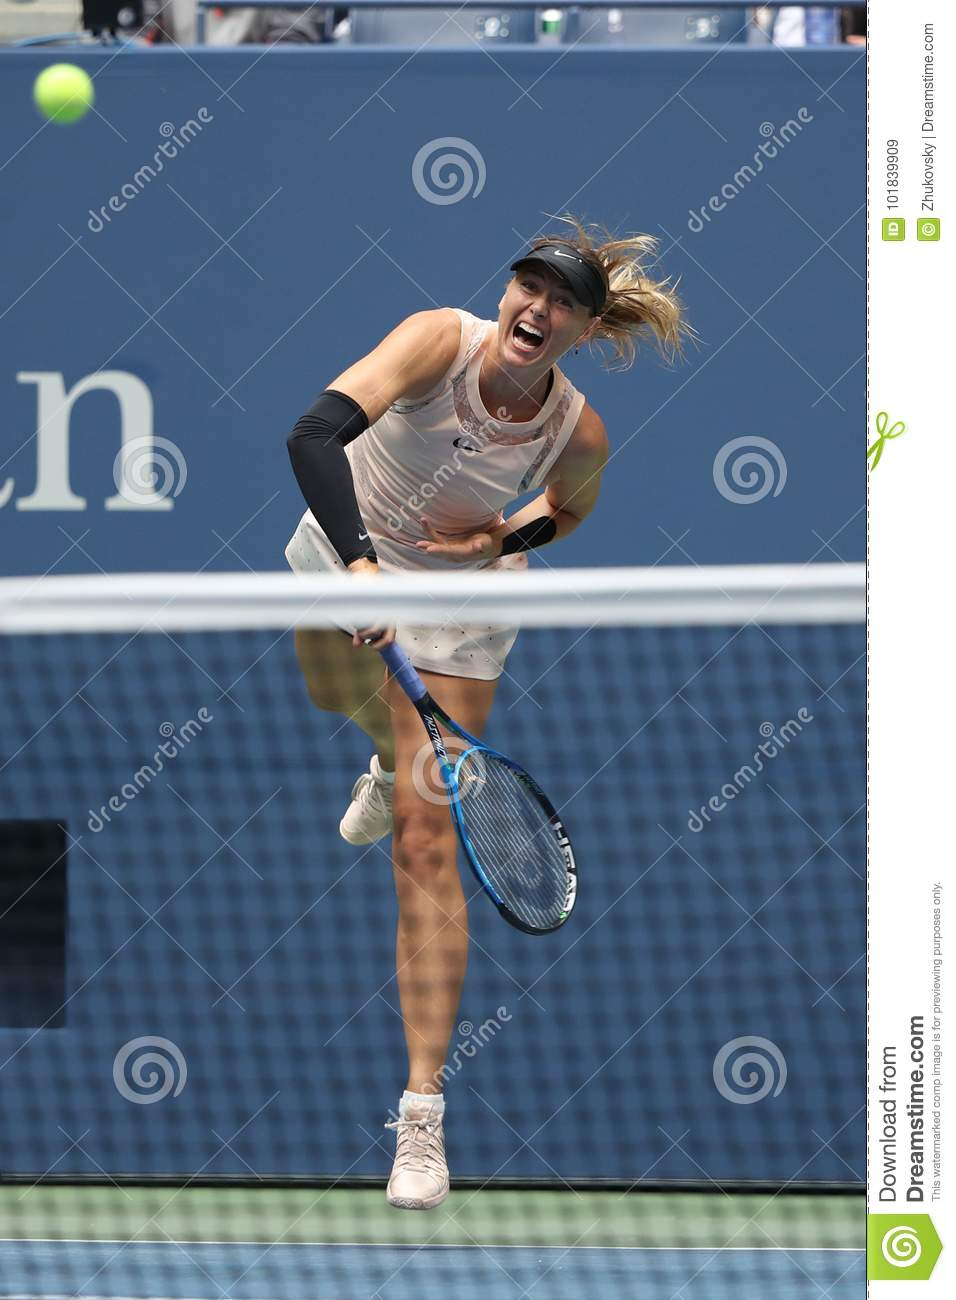 Five times Grand Slam Champion Maria Sharapova of Russia in action during her 2017 US Open round 4 match